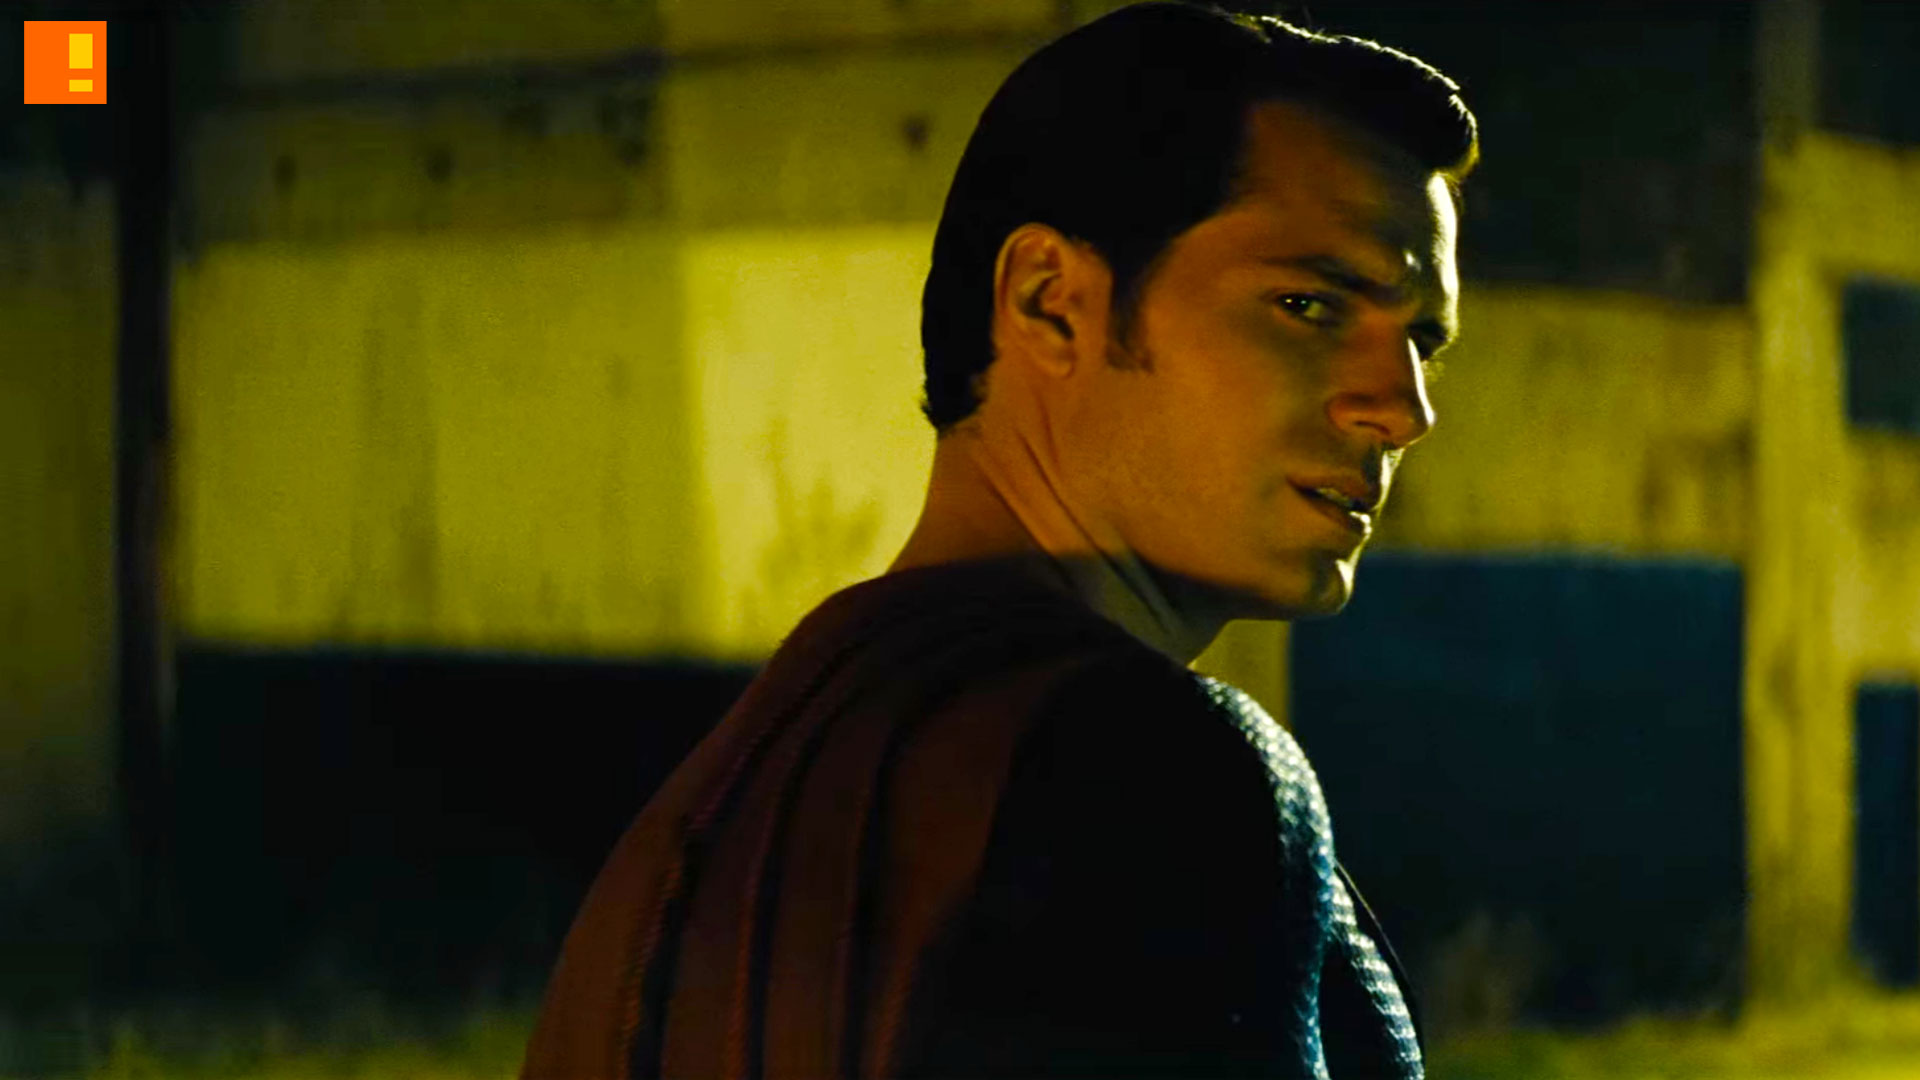 superman. henry cavill. batman v superman. dawn of justice. dc comics. warner bros. pictures. entertainment on tap. the action pixel. @theactionpixel